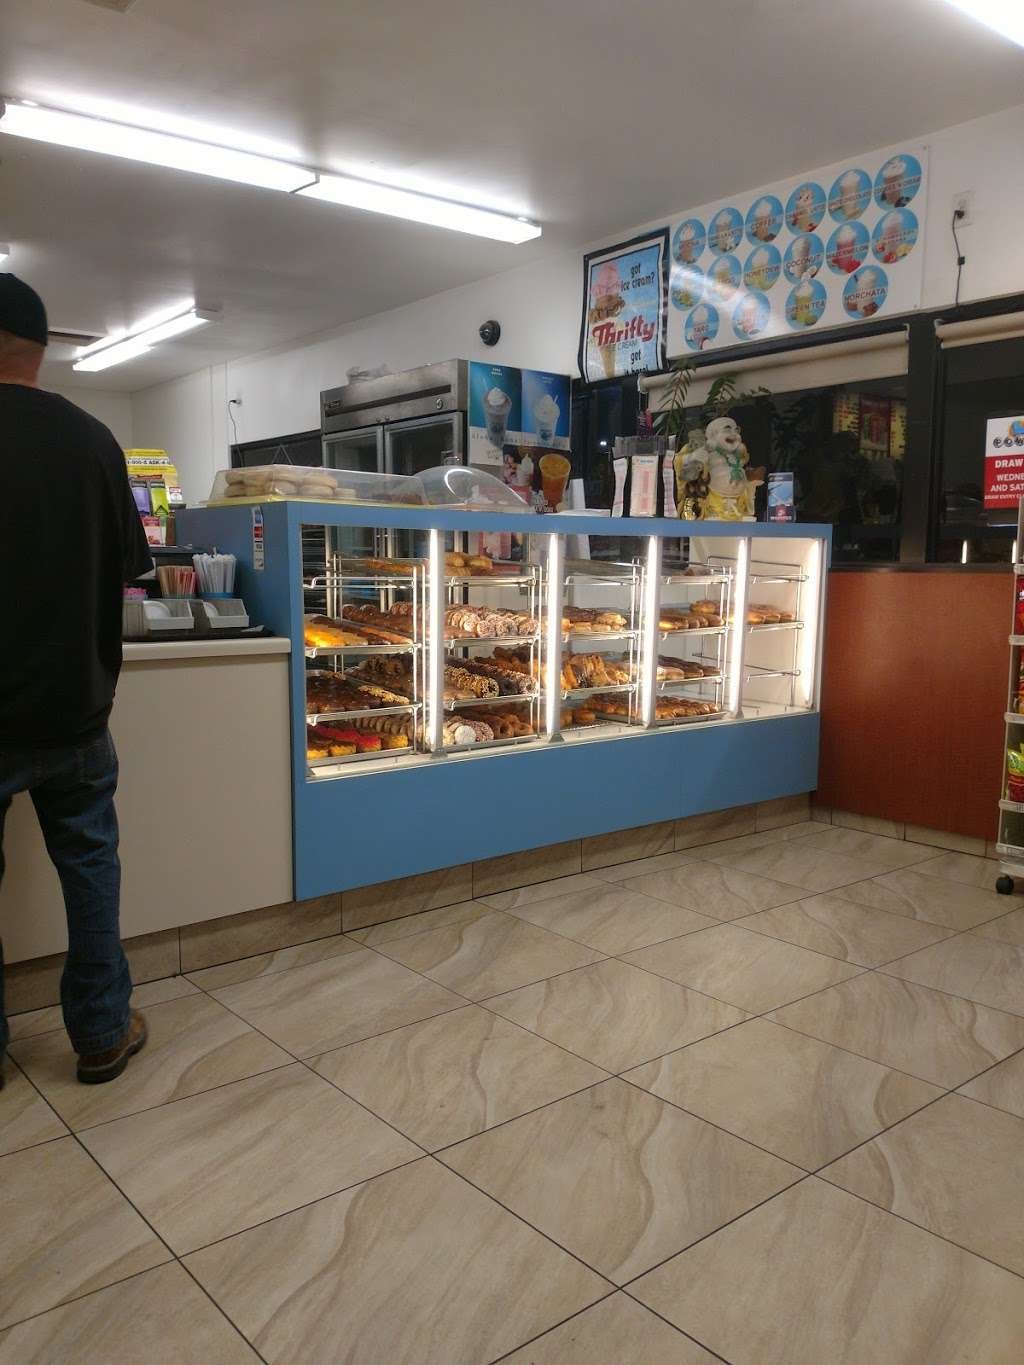 Cherris Donuts - bakery  | Photo 1 of 9 | Address: 10017 Orr and Day Rd, Santa Fe Springs, CA 90670, USA | Phone: (562) 929-1184